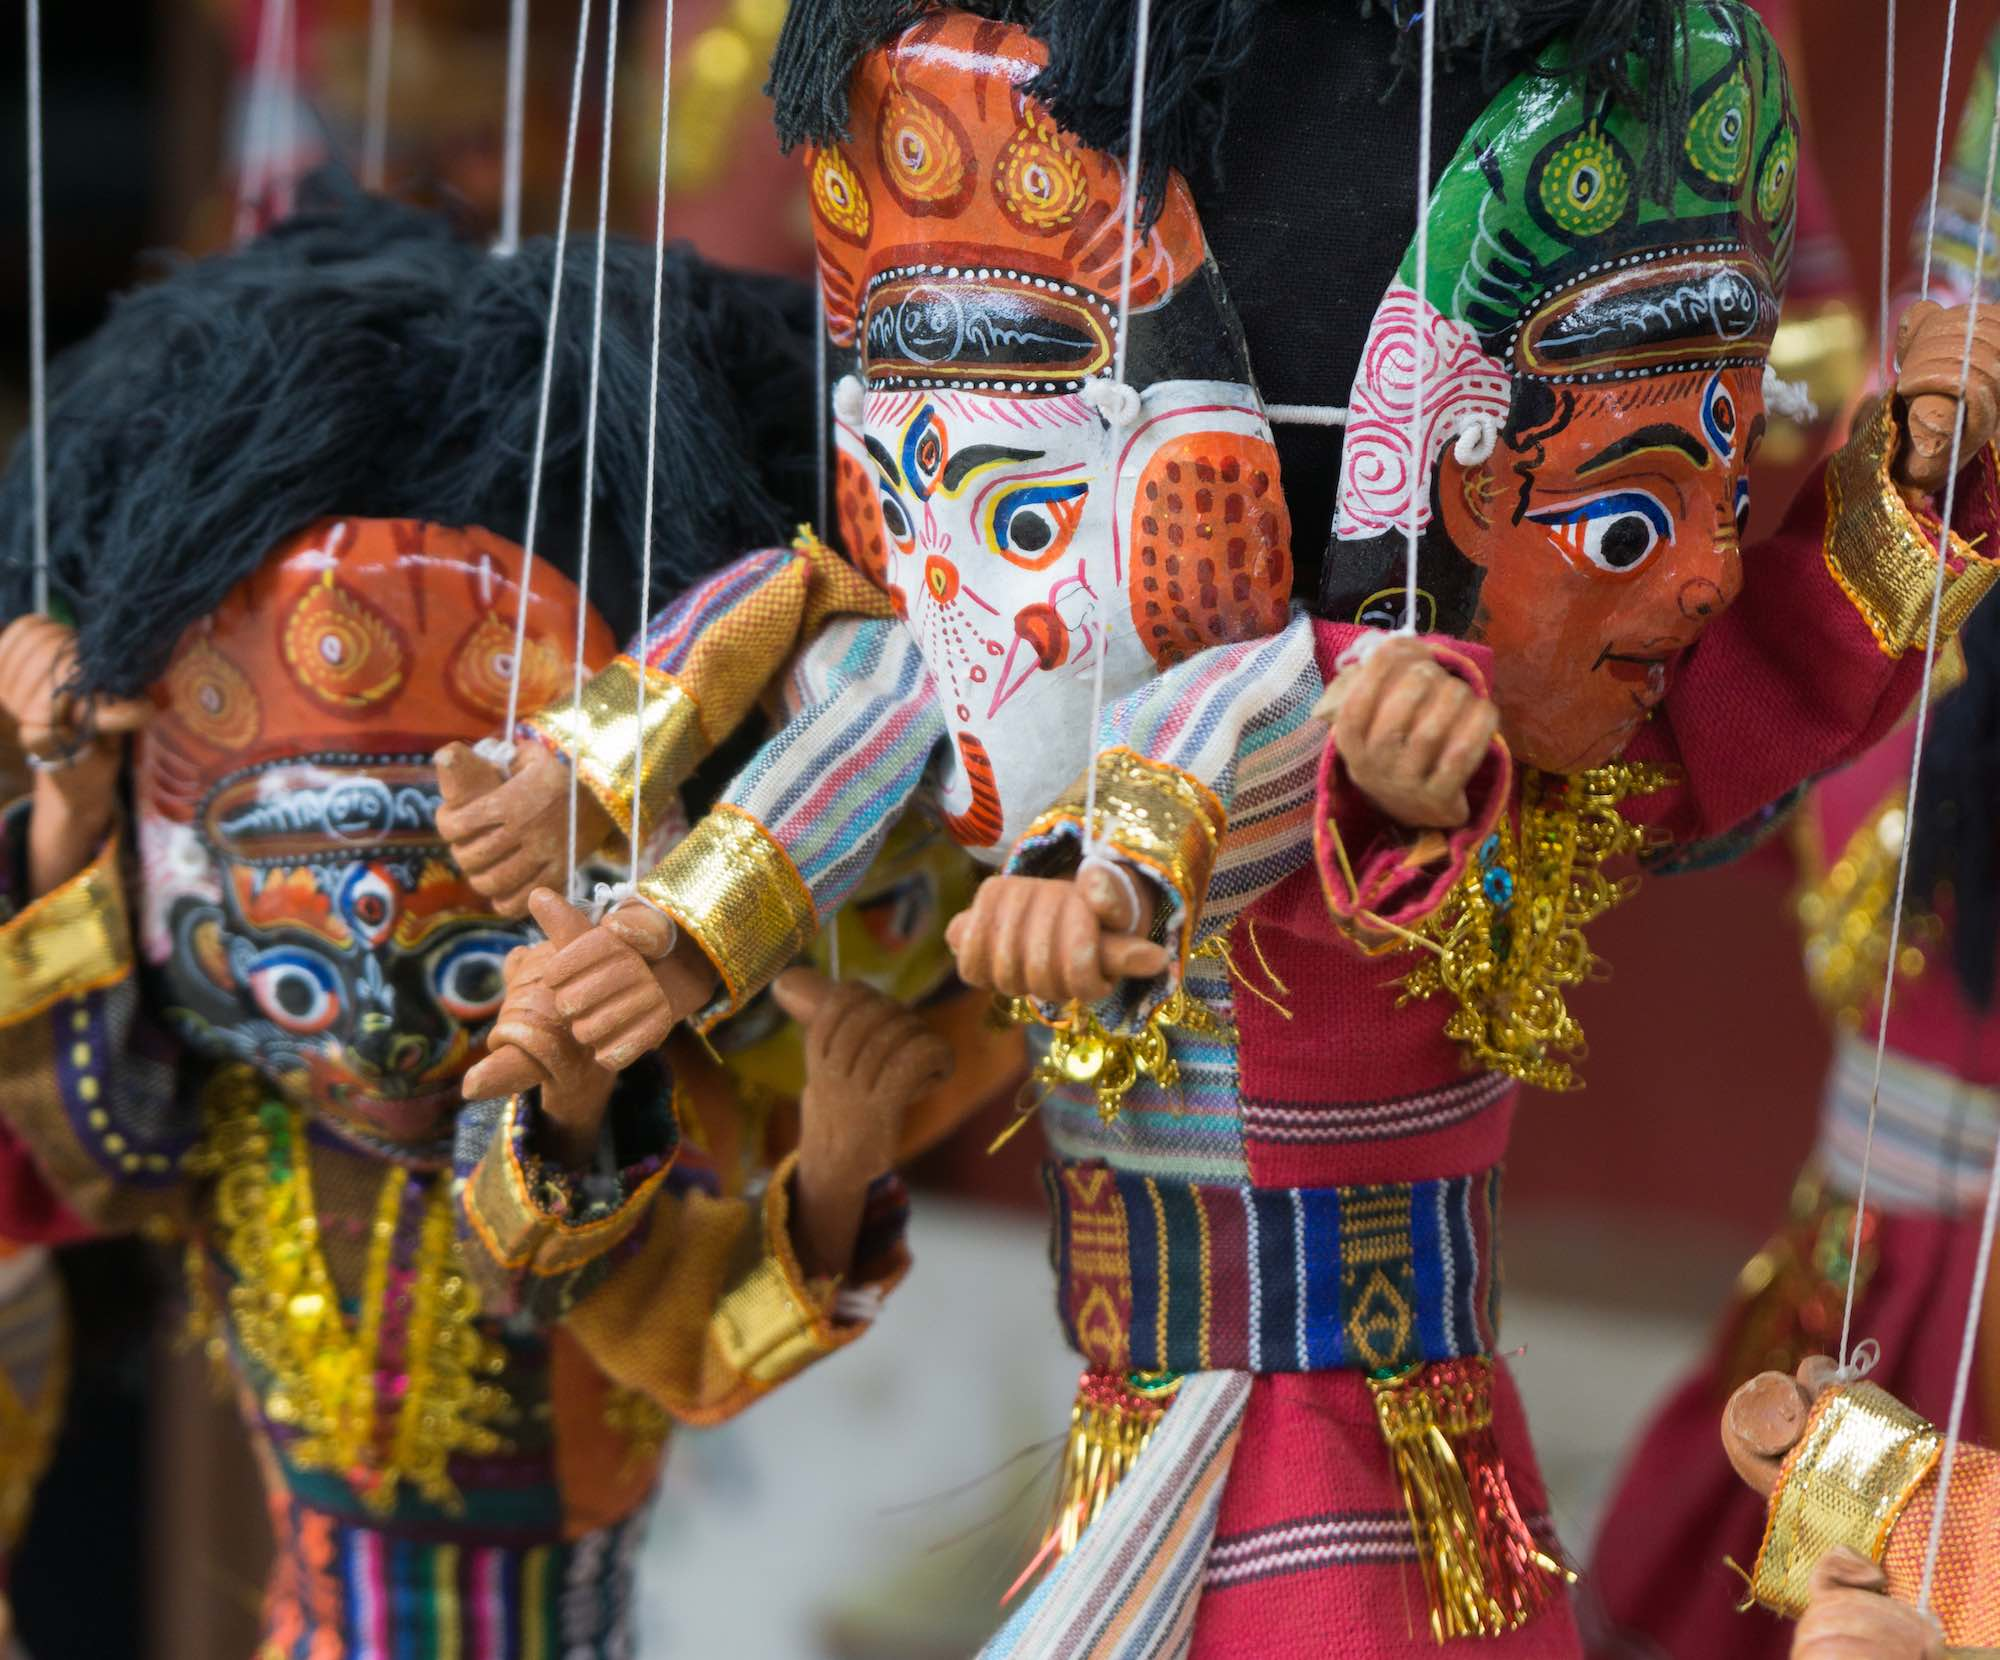 Potters' Square Bhaktapur May 2018 puppets hanging around